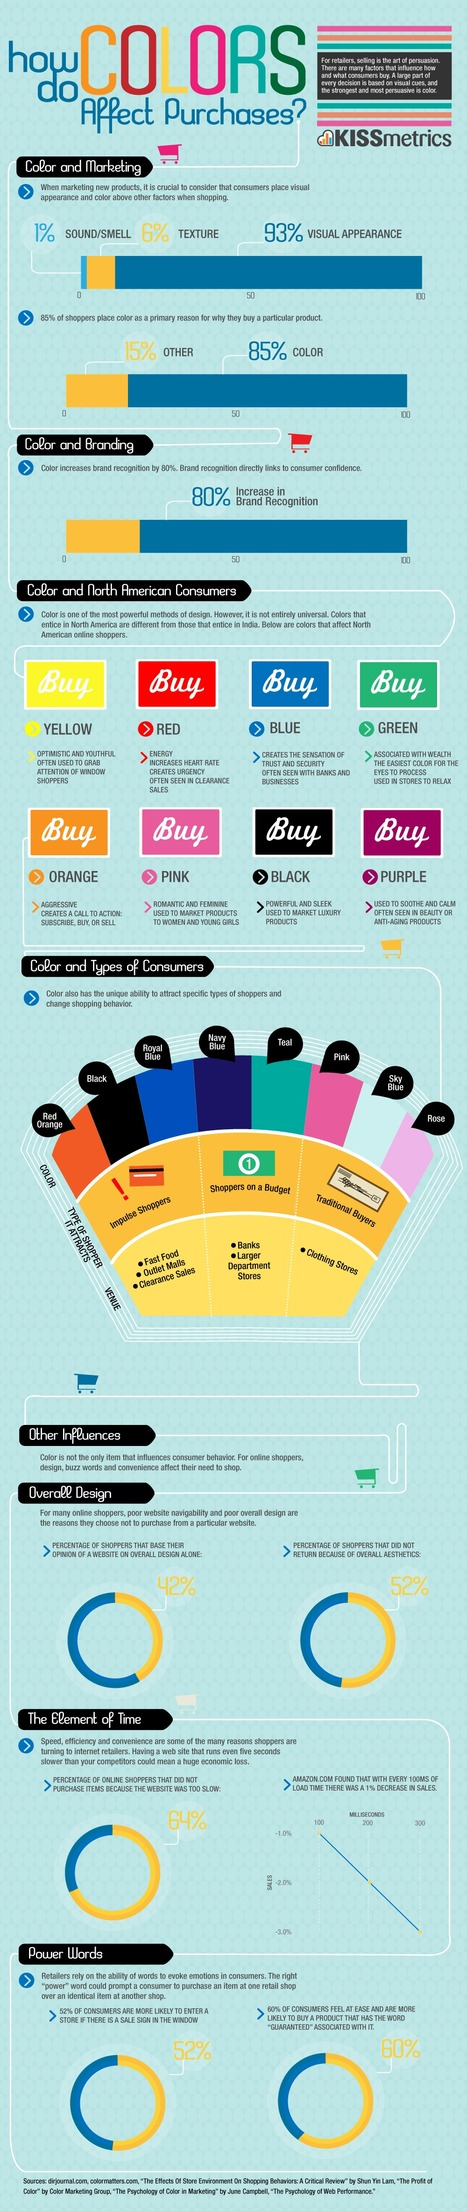 INFOGRAPHIC: How do Colors Affect Purchases? - UX Motel | Communication & Social Media Marketing | Scoop.it